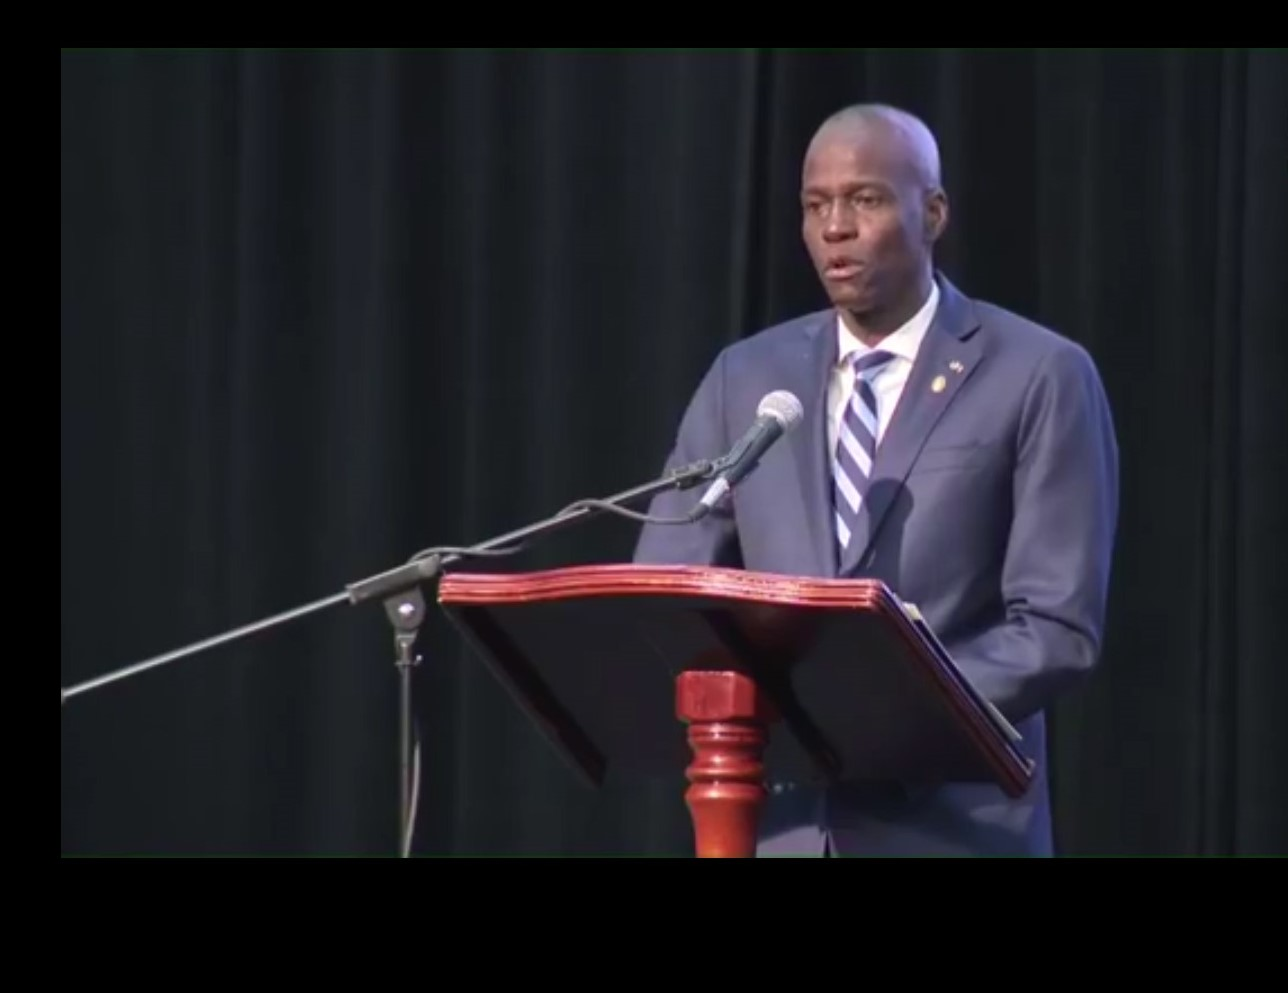 H.E. Jovenel Moise, President of Haiti and Outgoing Chair of CARICOM, addresses the opening of the 39th Regular Meeting of the Conference of Heads of Government